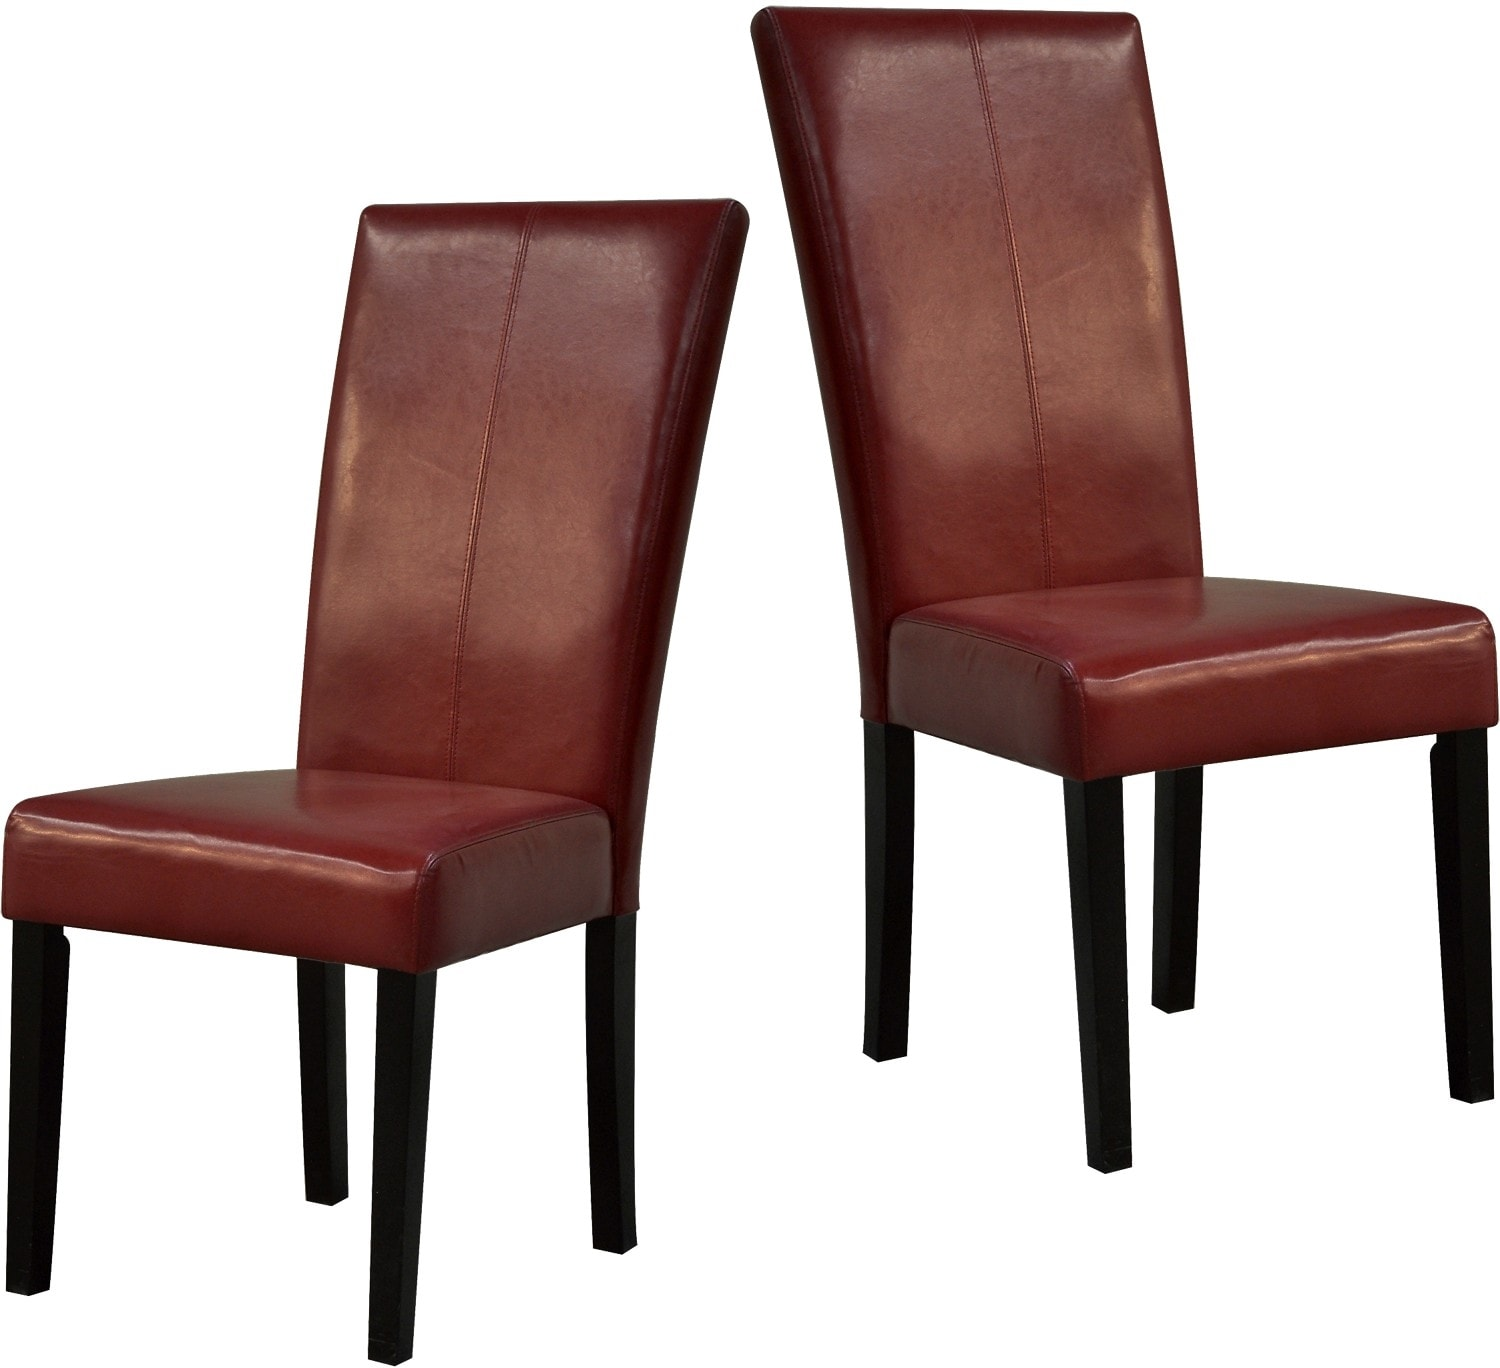 dining room furniture red dining chairs package of two